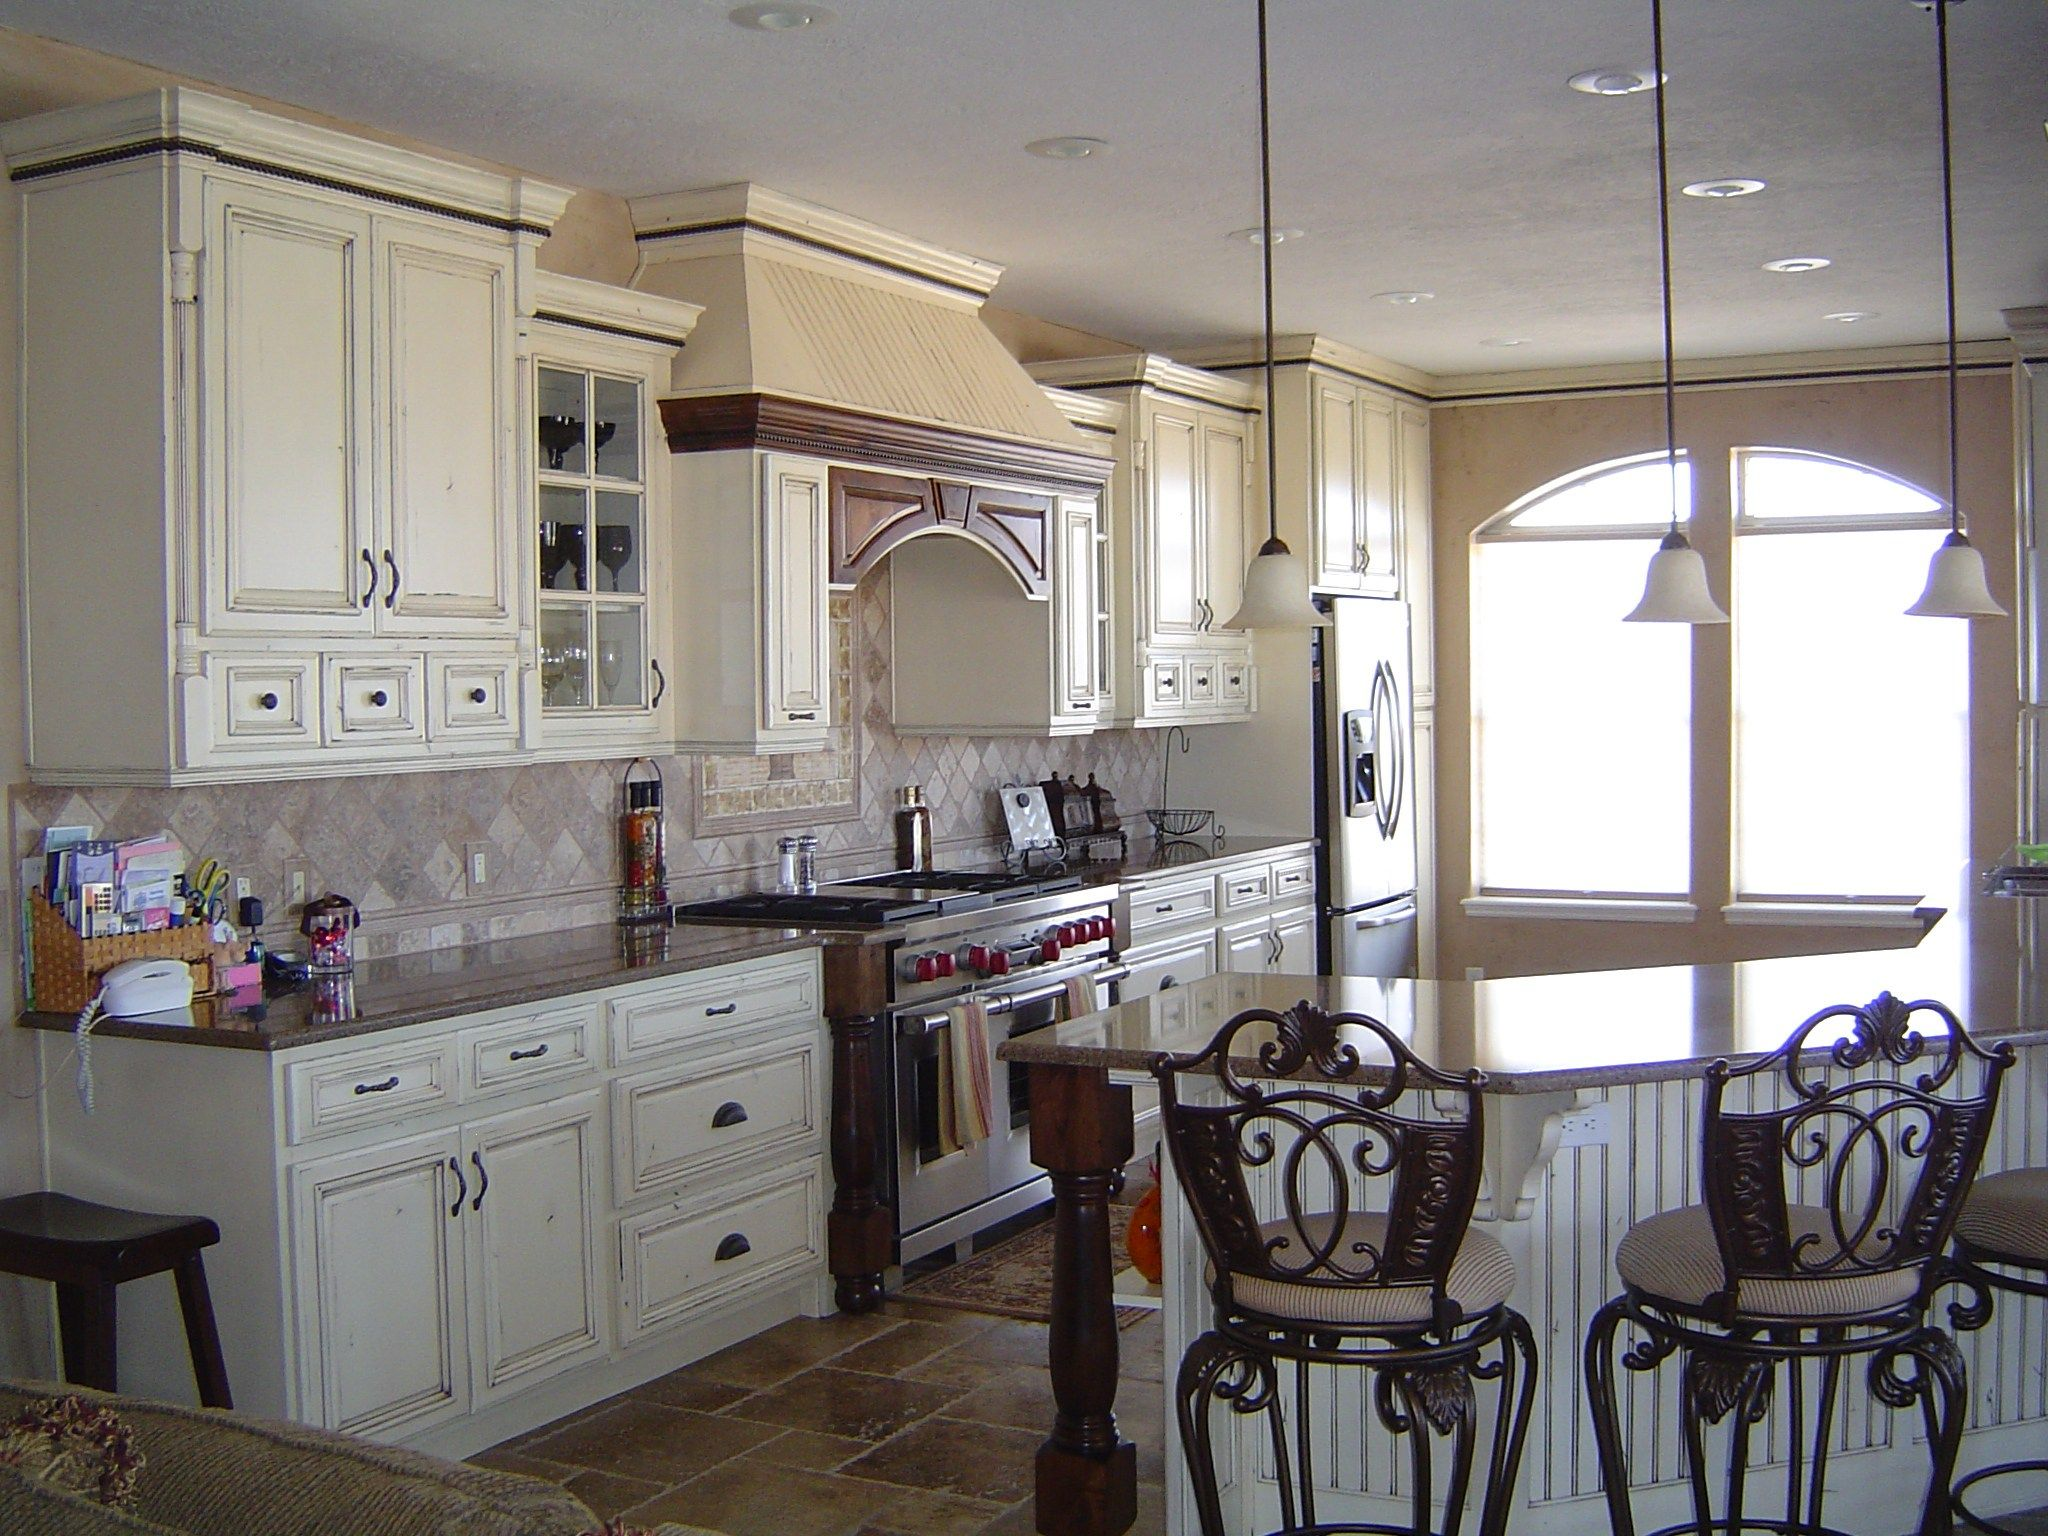 rustic white country kitchens. Home Remodel White Wash French Country Cabinetry Kitchen Cabinets Dream Small Rustic Kitchens R